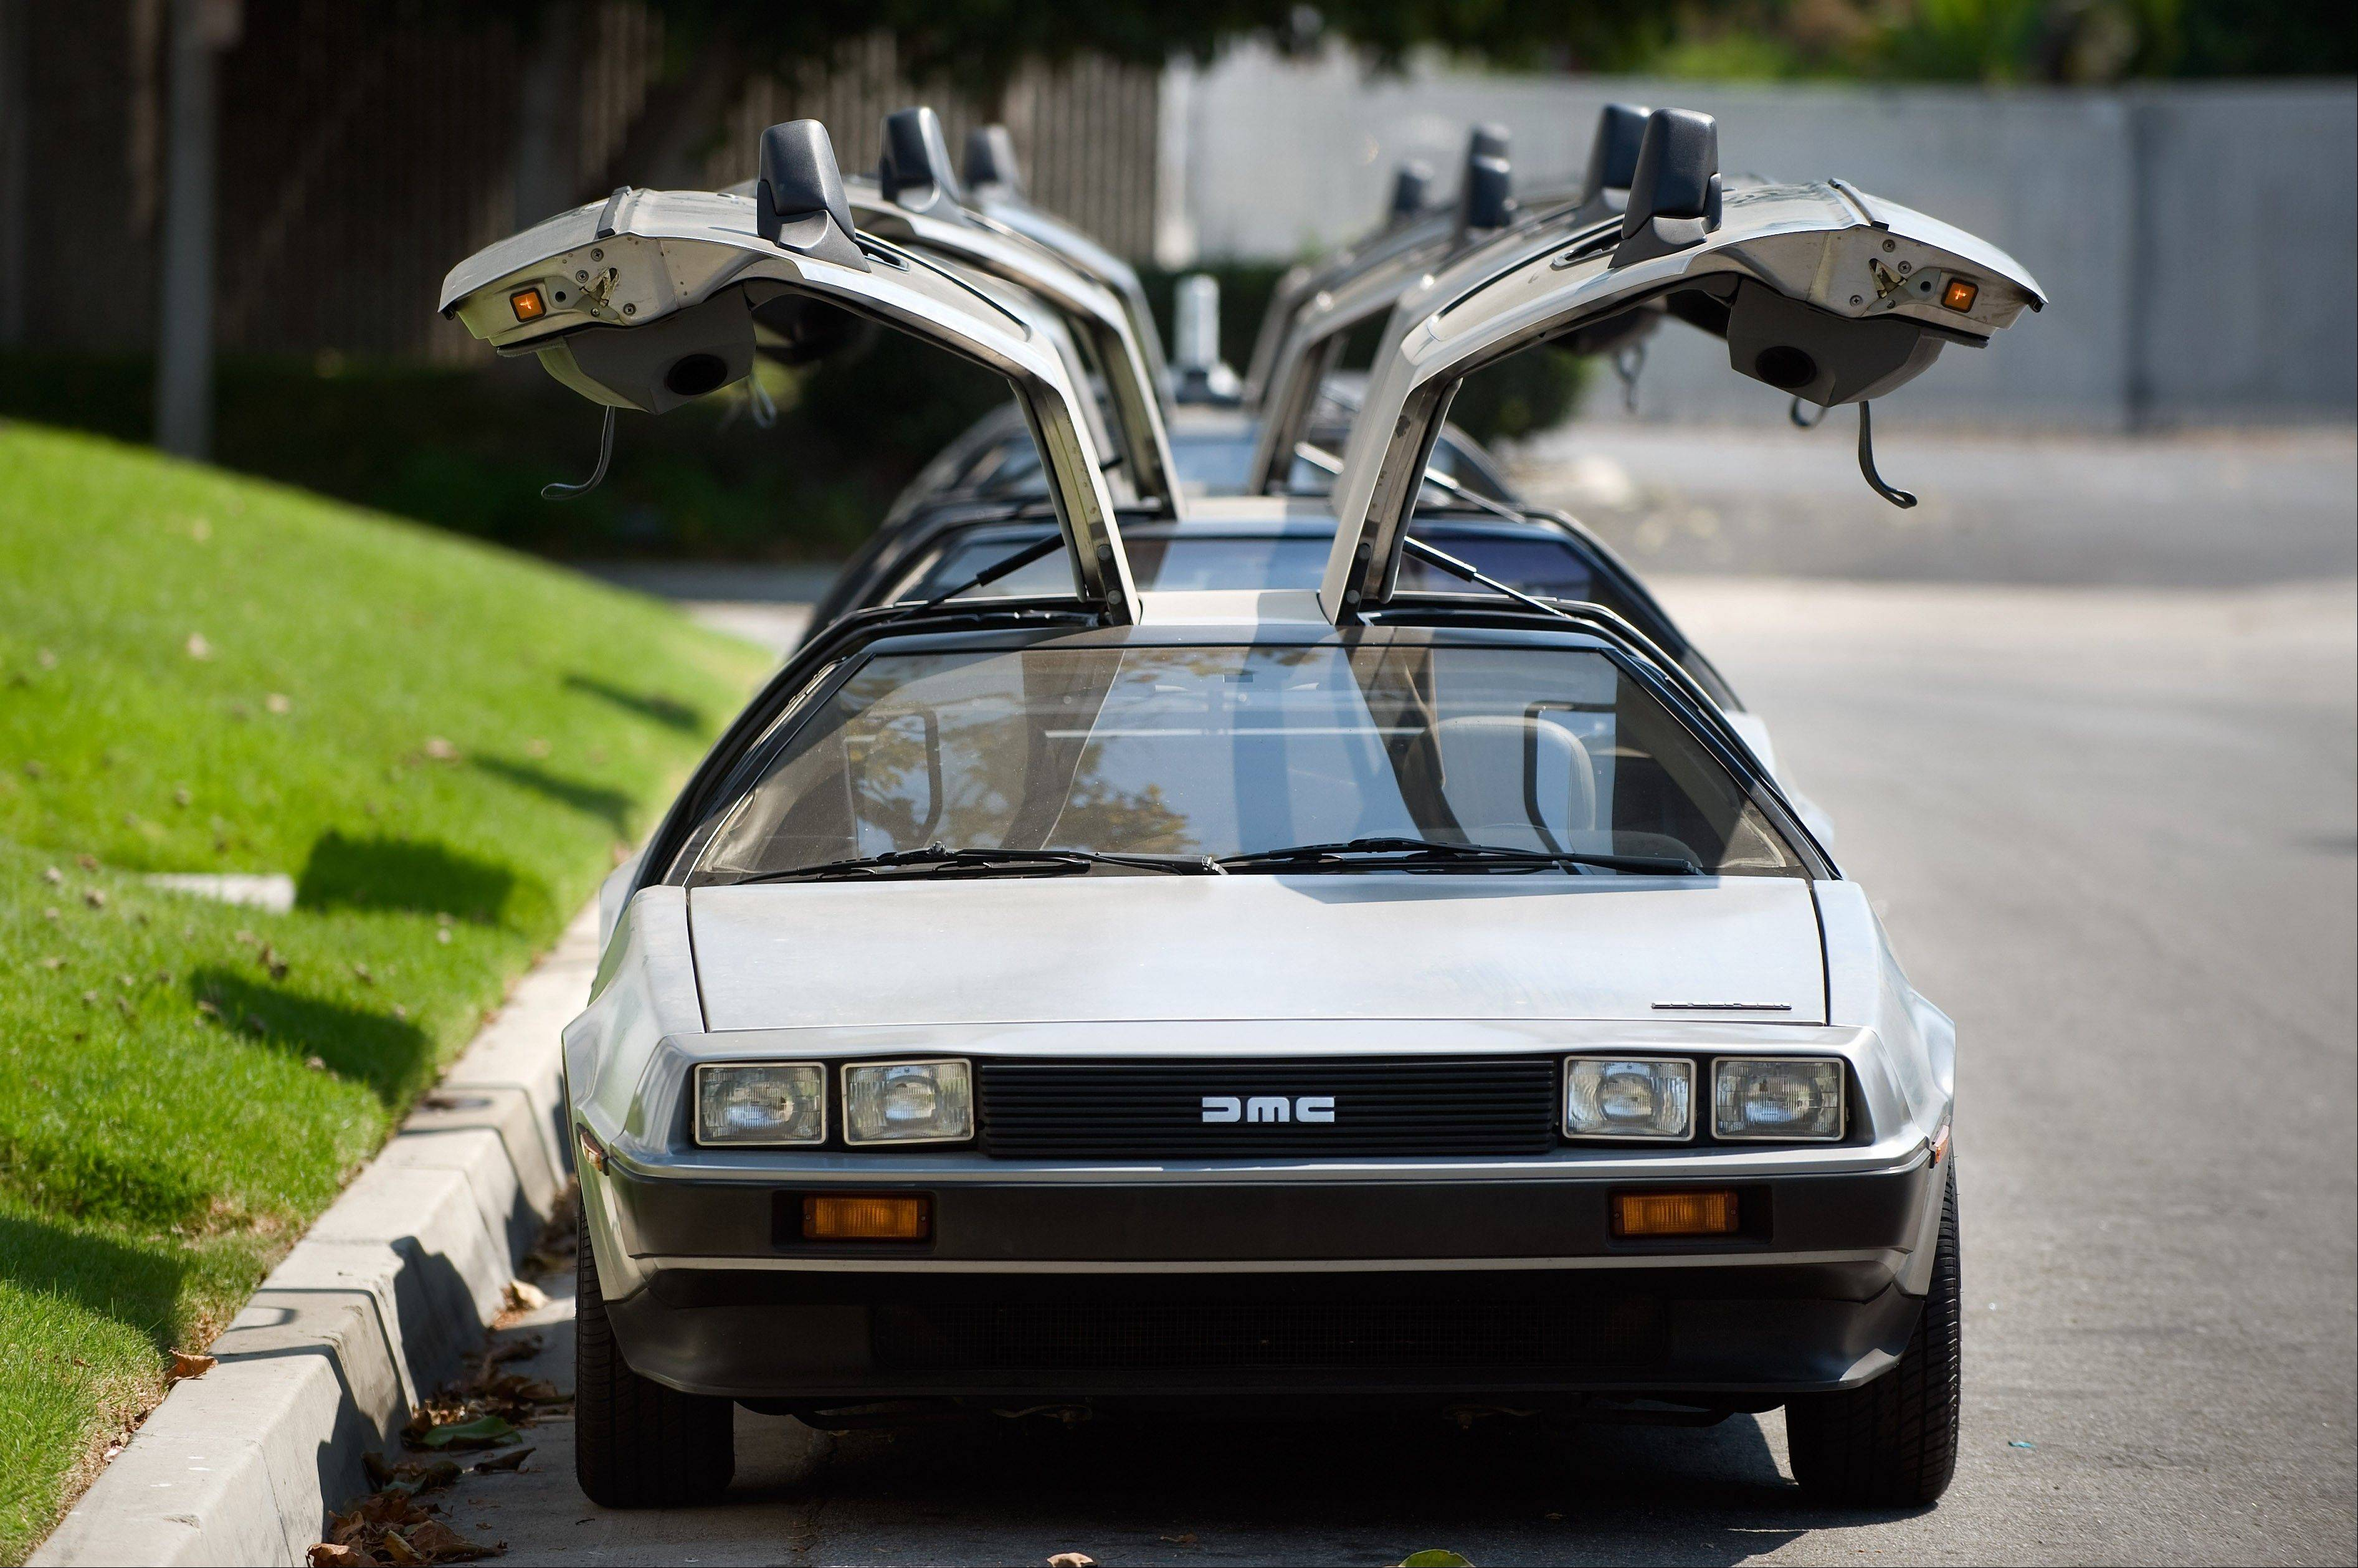 DeLorean cars parked Tuesday outside The DeLorean Motor Company in Huntington Beach, Calif. The cars were made from 1981-83 and were known for their stainless steel body and gull-wing doors.